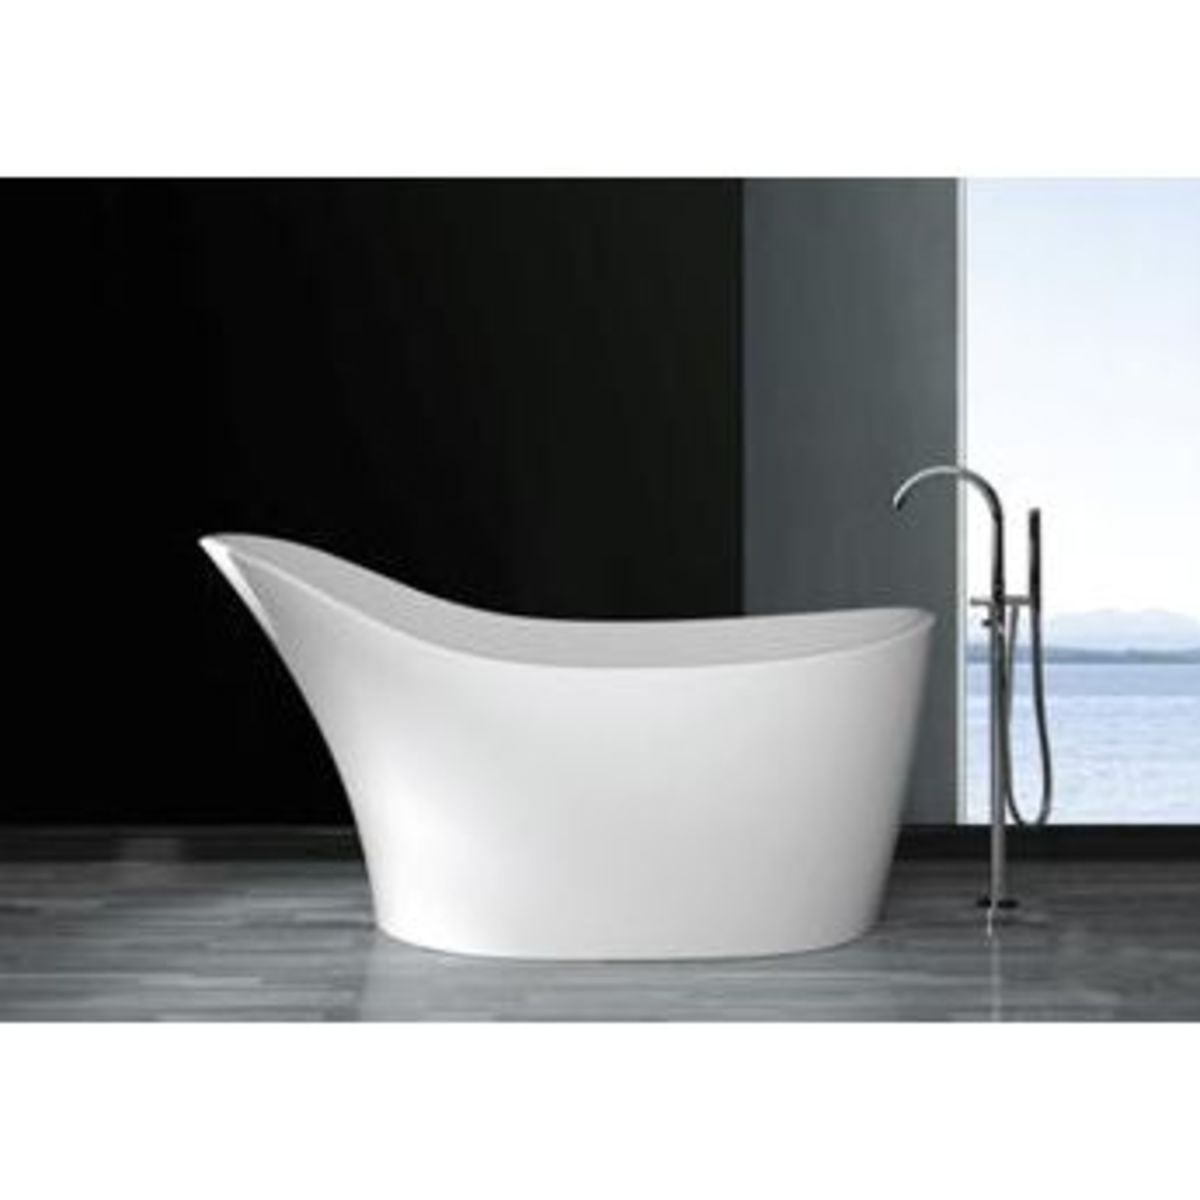 The advantages and disadvantages of stone baths hubpages for Boundary bathrooms